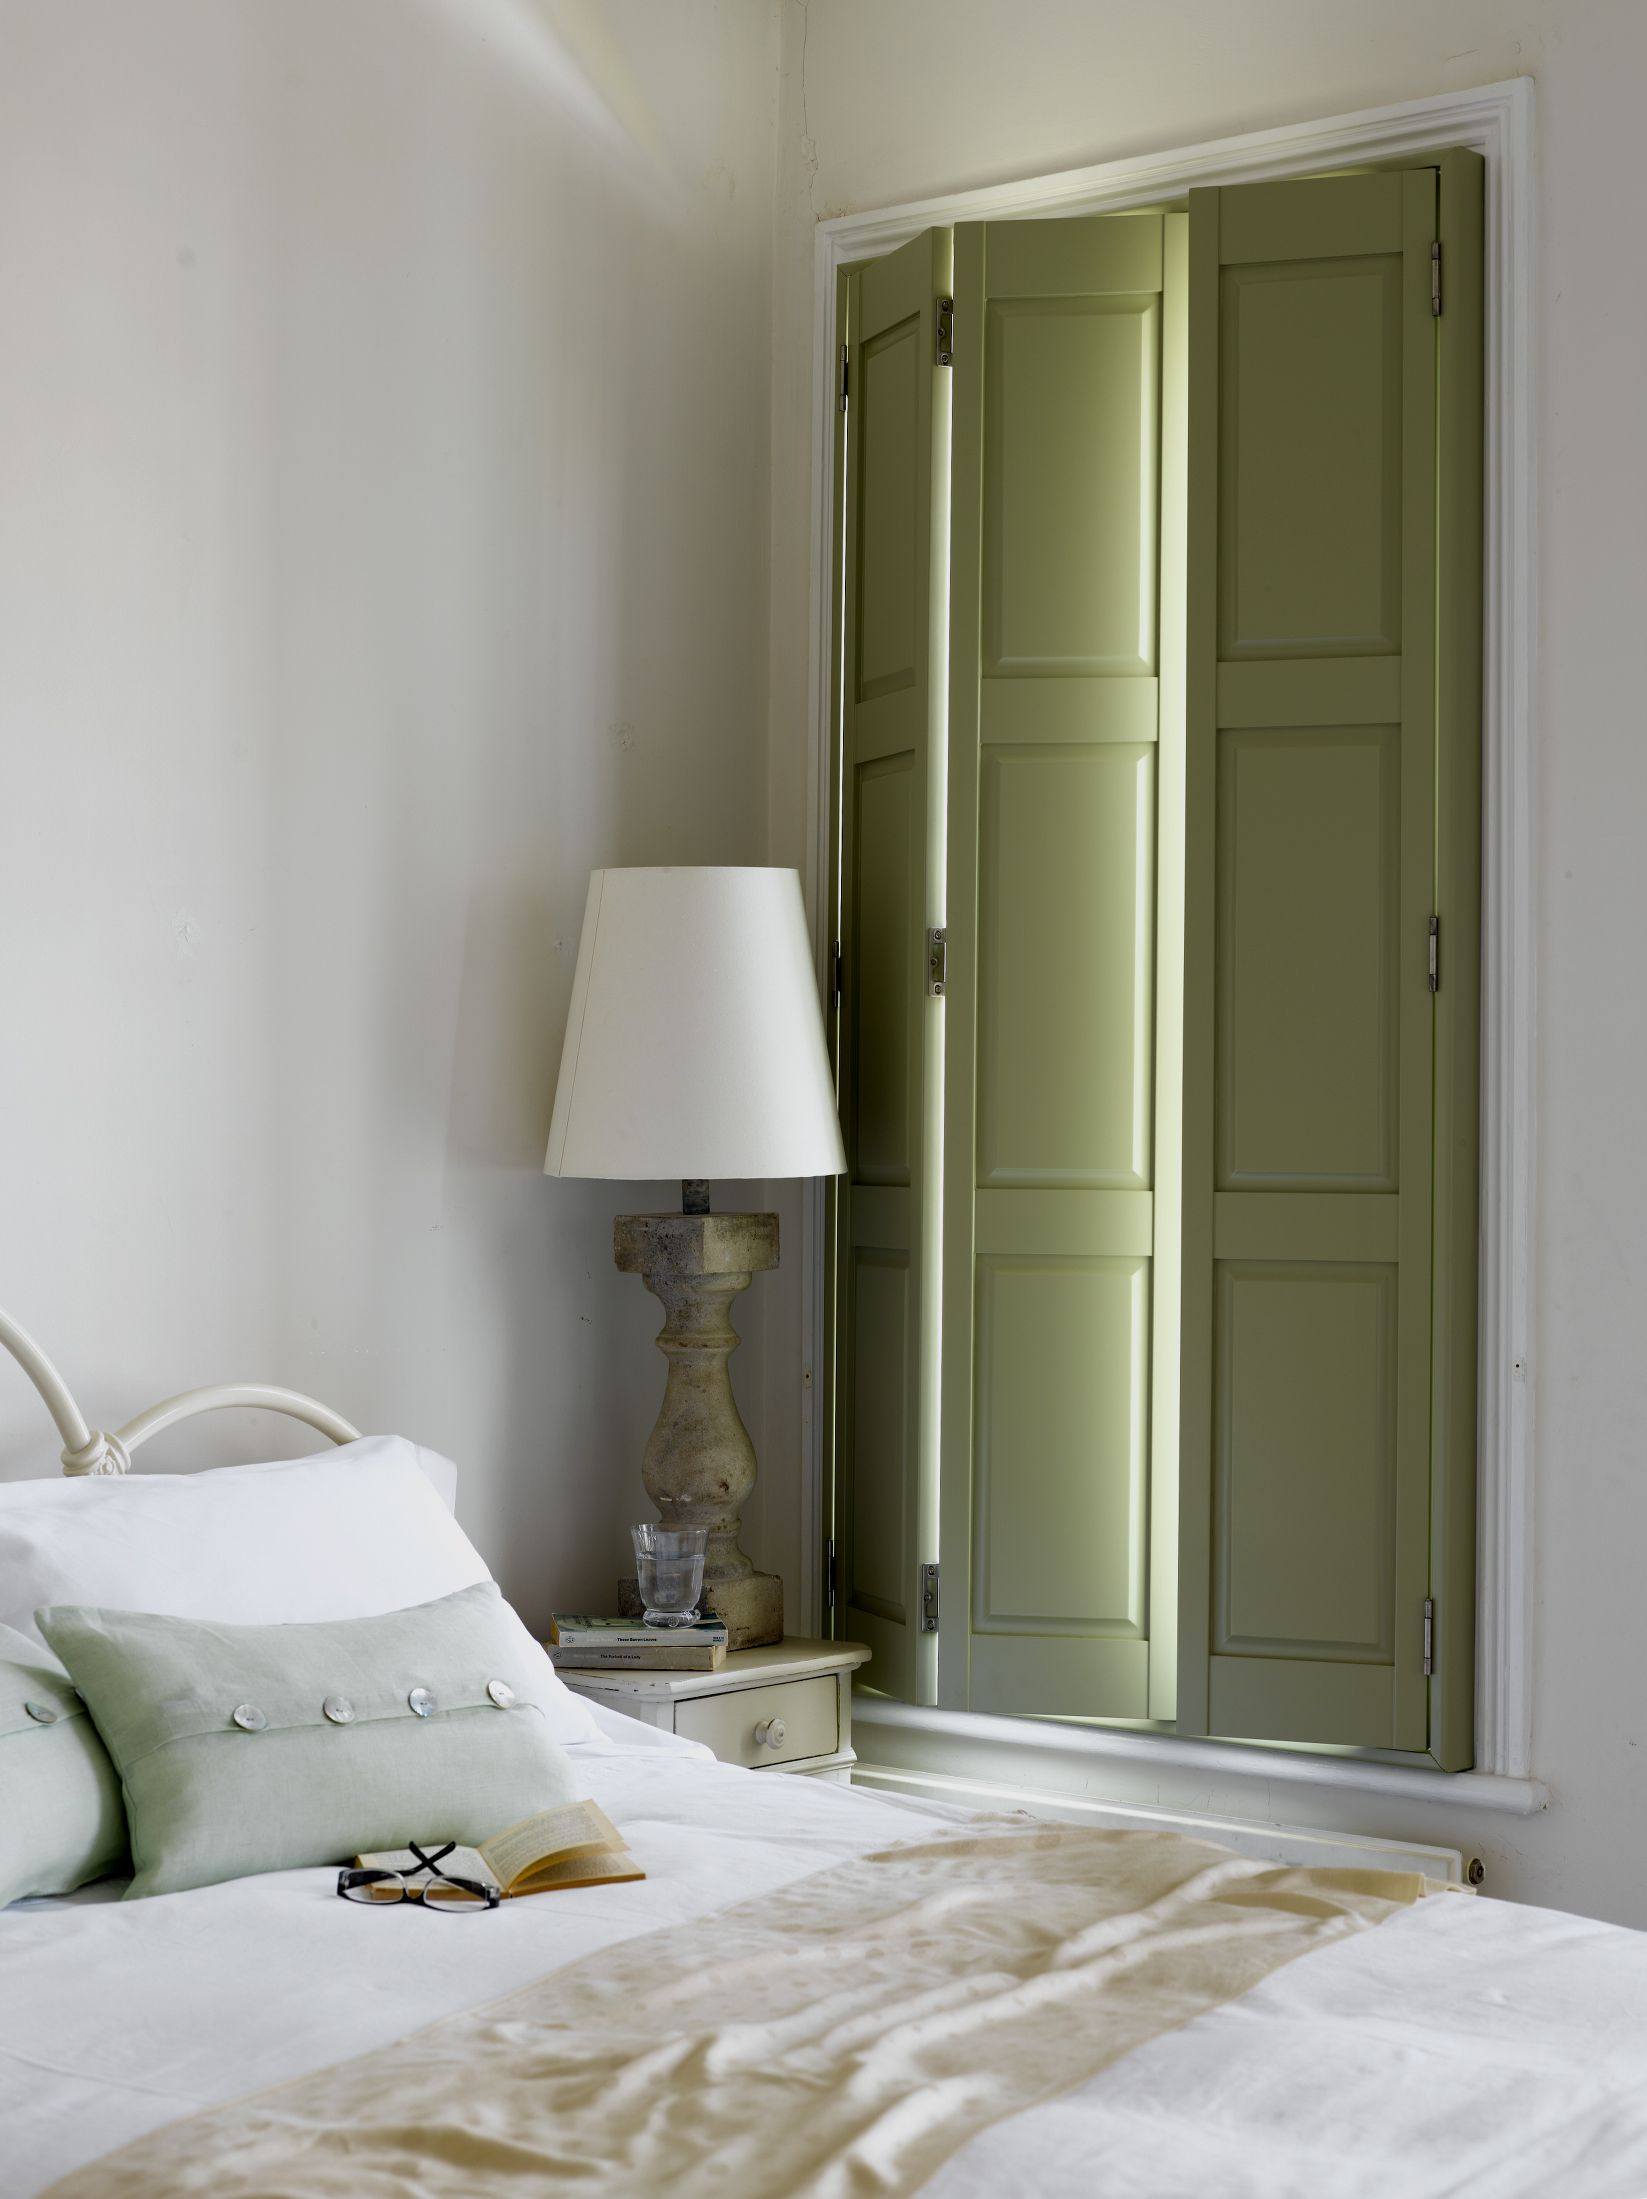 Add some traditional elegant to a bedroom design with